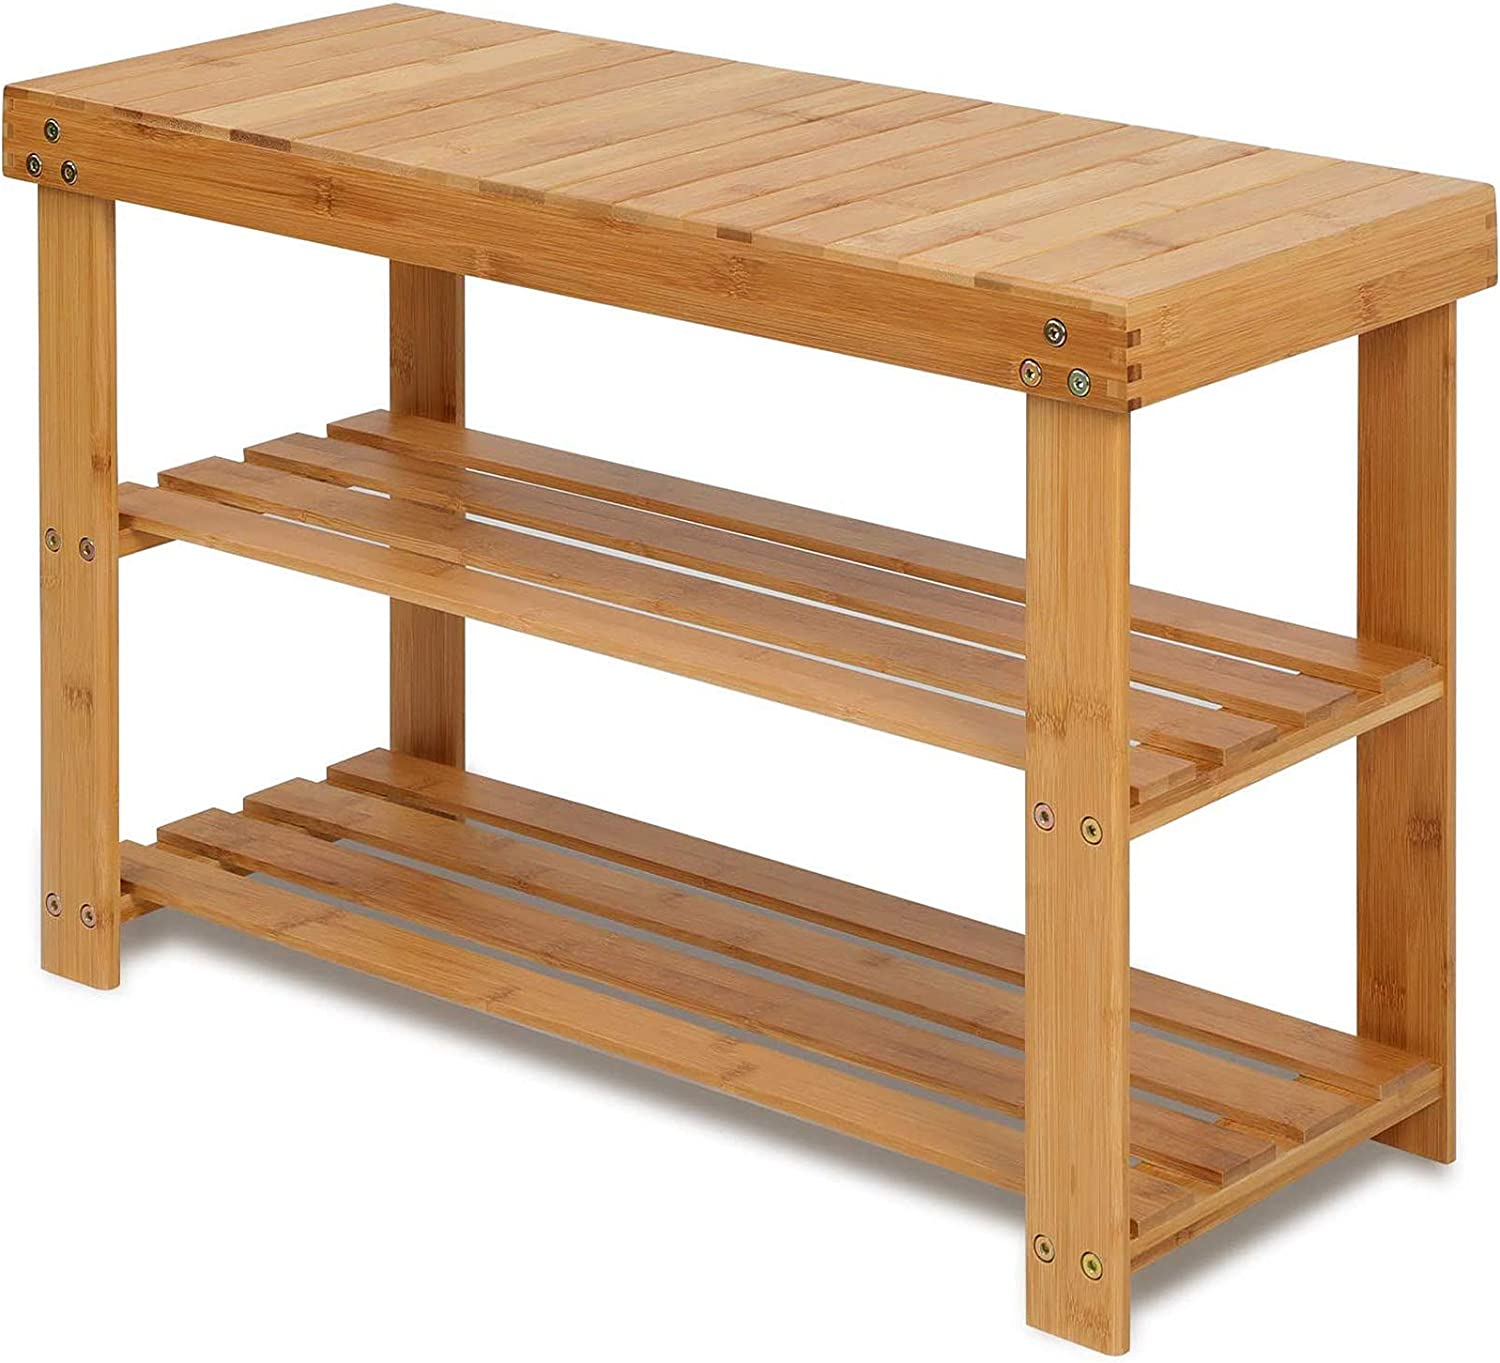 Storage Shelf Ideal for Entryway Hallway Bathroom Living Room and Corridor Modern Furniture Home Decor Office Easy Assemble 100/% Natural Bamboo Wood Shoe Rack Bench 2-Tier Shoe Organizer